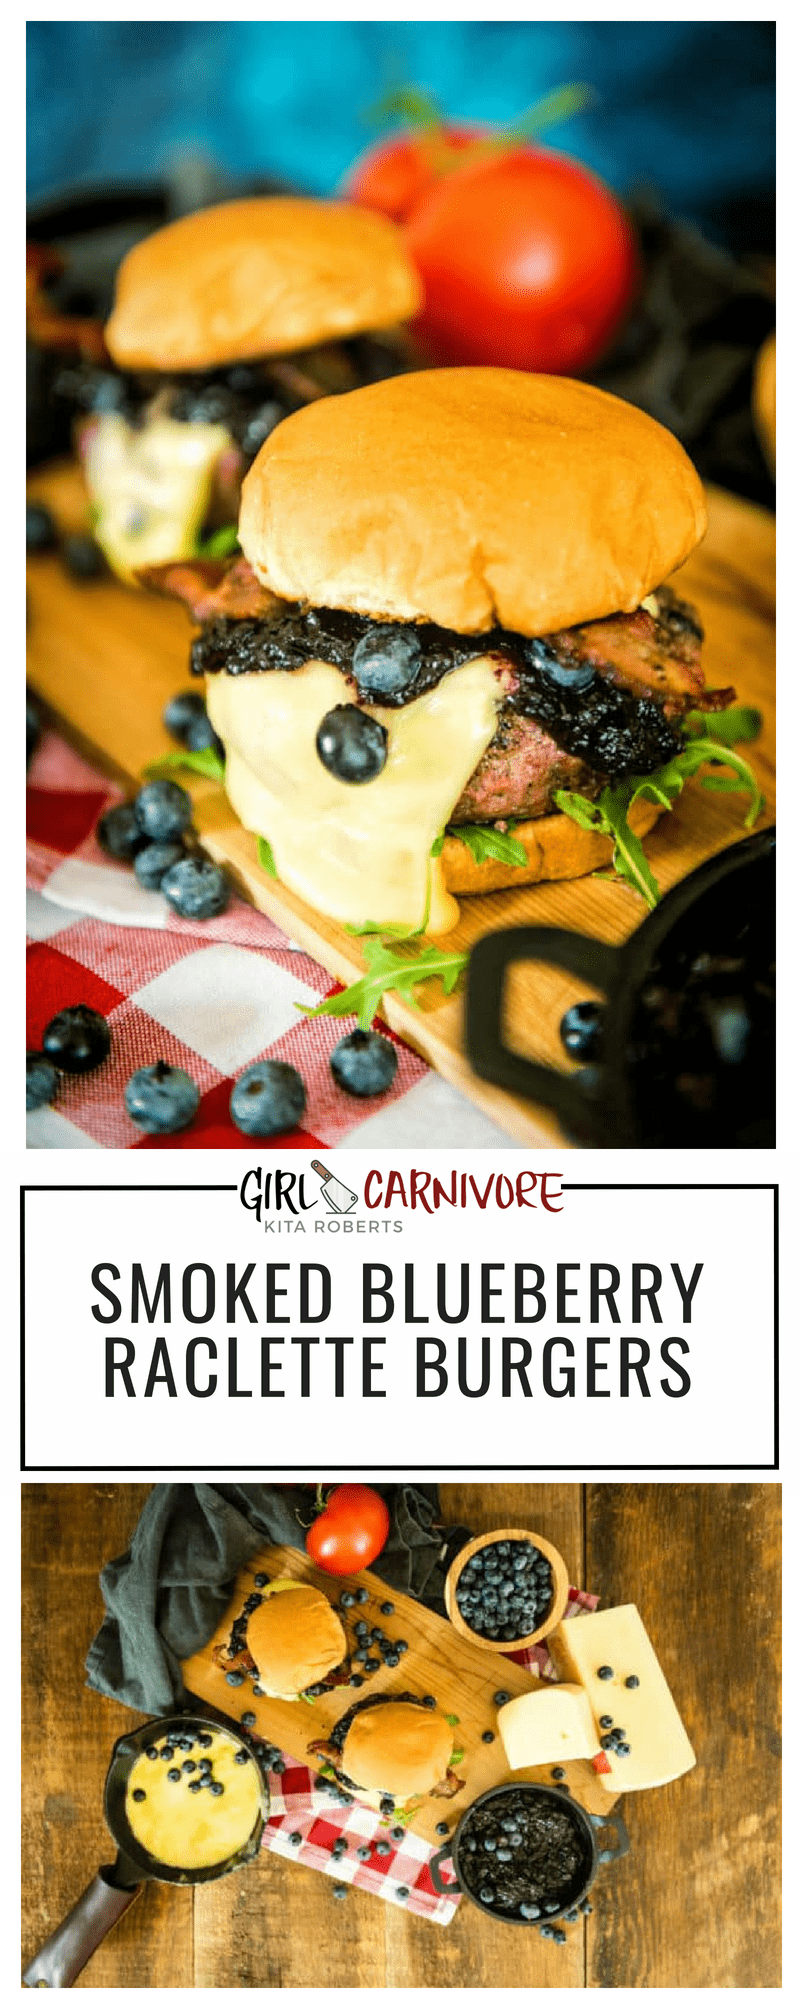 Smoked blueberry compote, smoked grass-fed burgers, thick cut bacon and fresh Raclette cheese on top. This Smoked Blueberry Raclette Burger is the one burger you have to try! #burgers #recipe #grilling